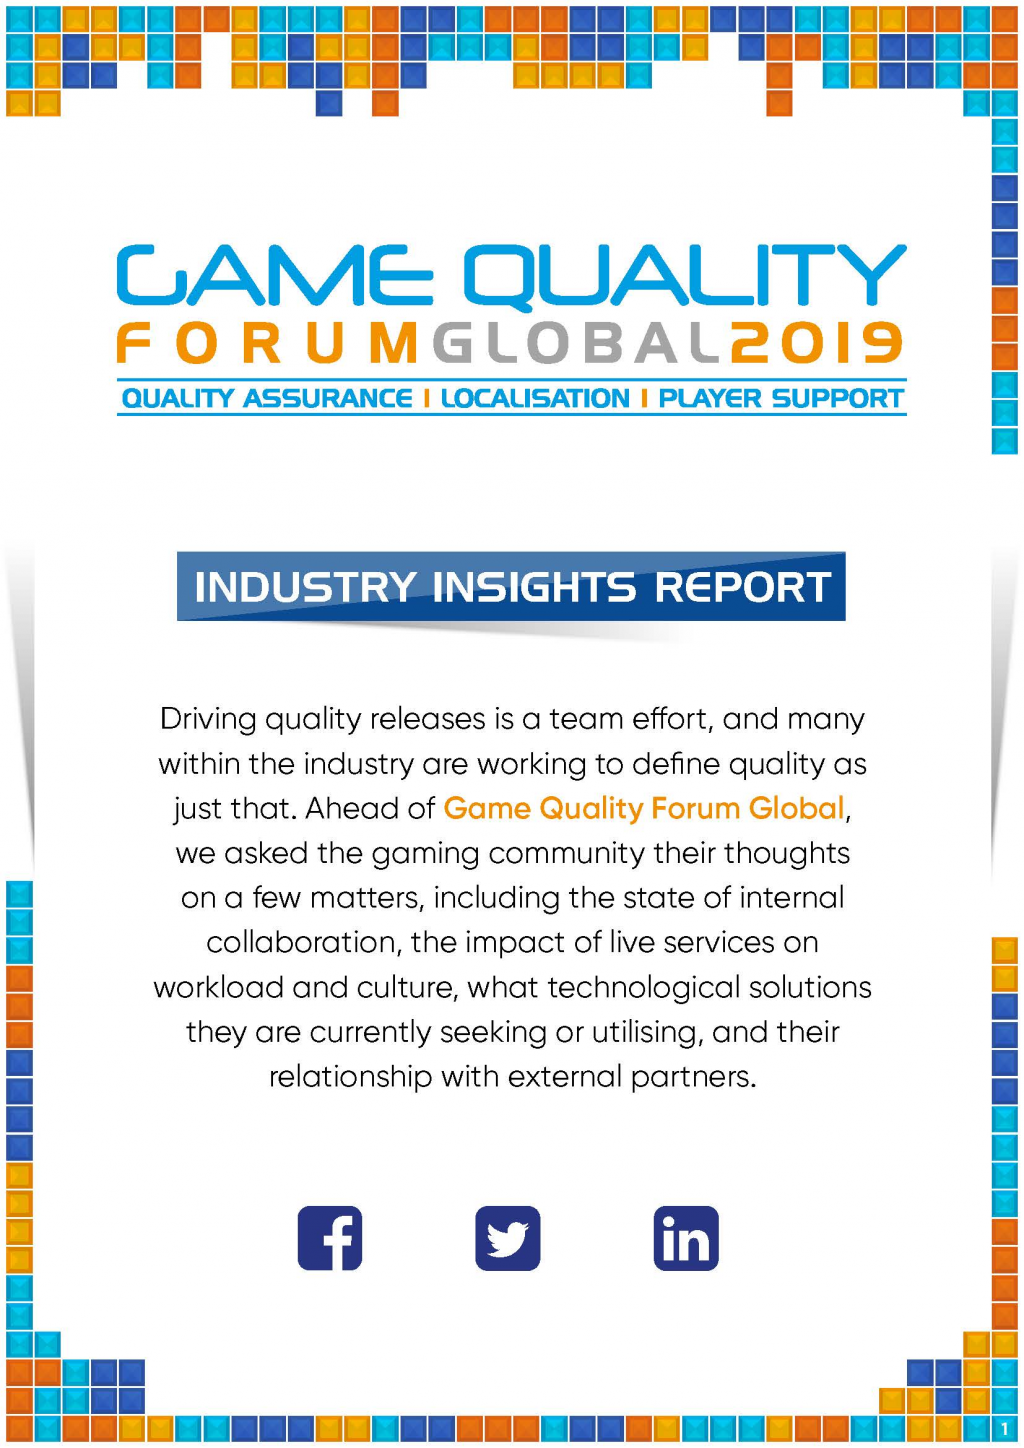 2019 Industry Insights Report